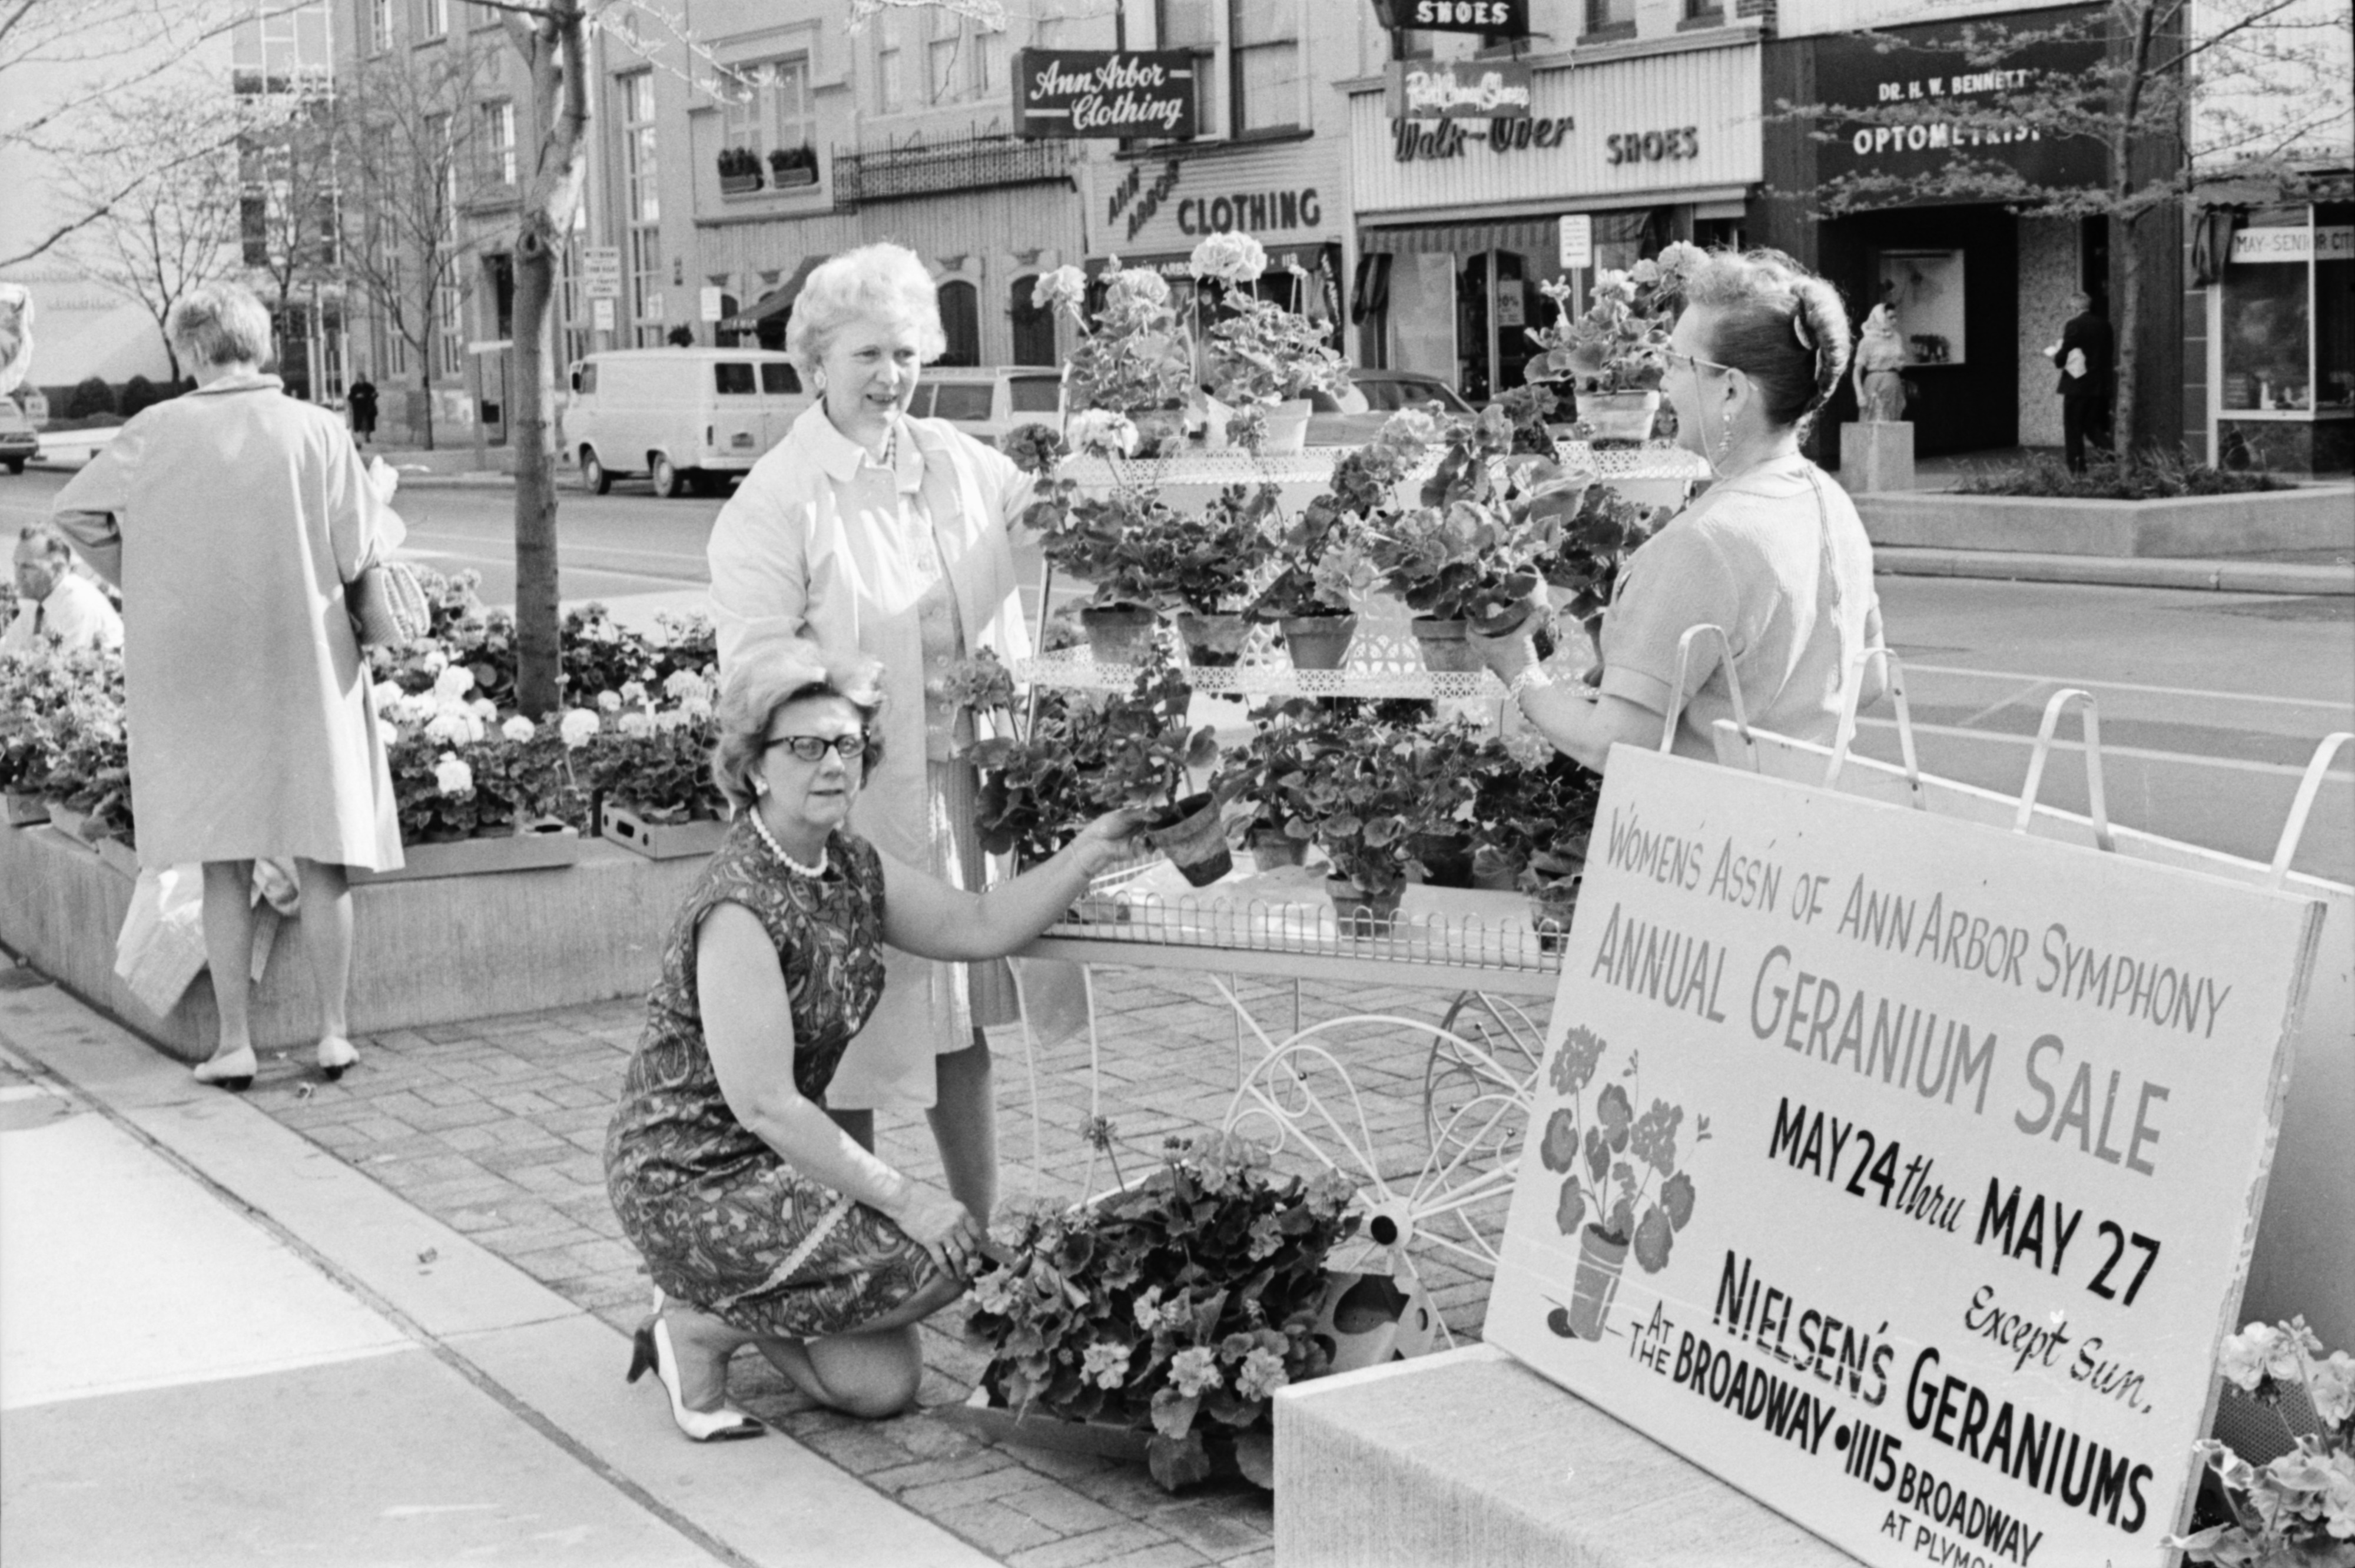 Women's Association of the Ann Arbor Symphony Annual Geranium Sale on Main Street, May 1968 image